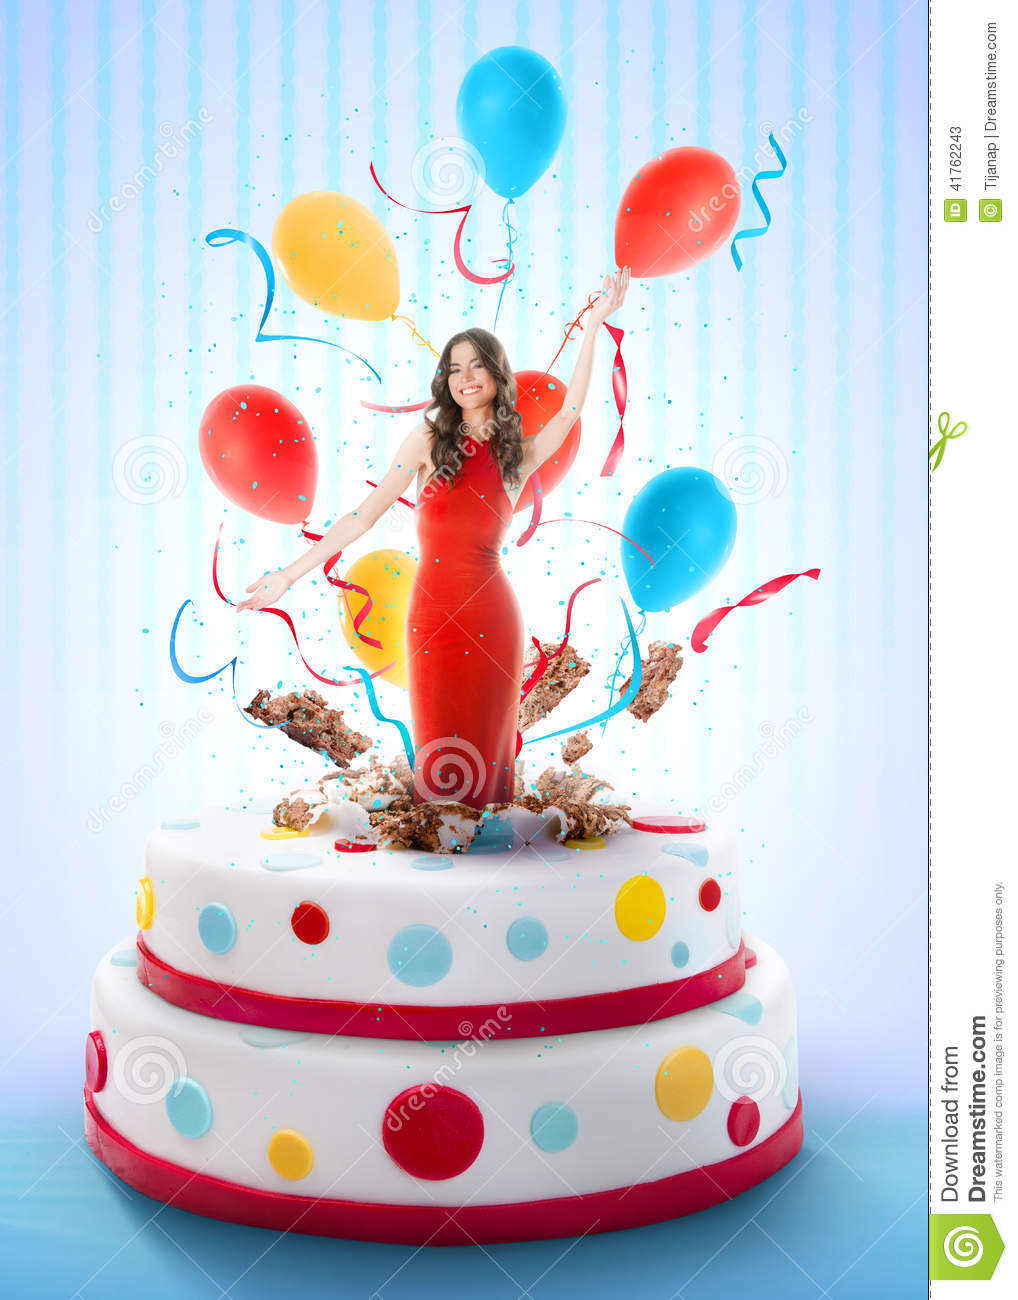 Woman Birthday Cake Beautiful Woman Jumping Out Of The Cake Stock Image Image Of